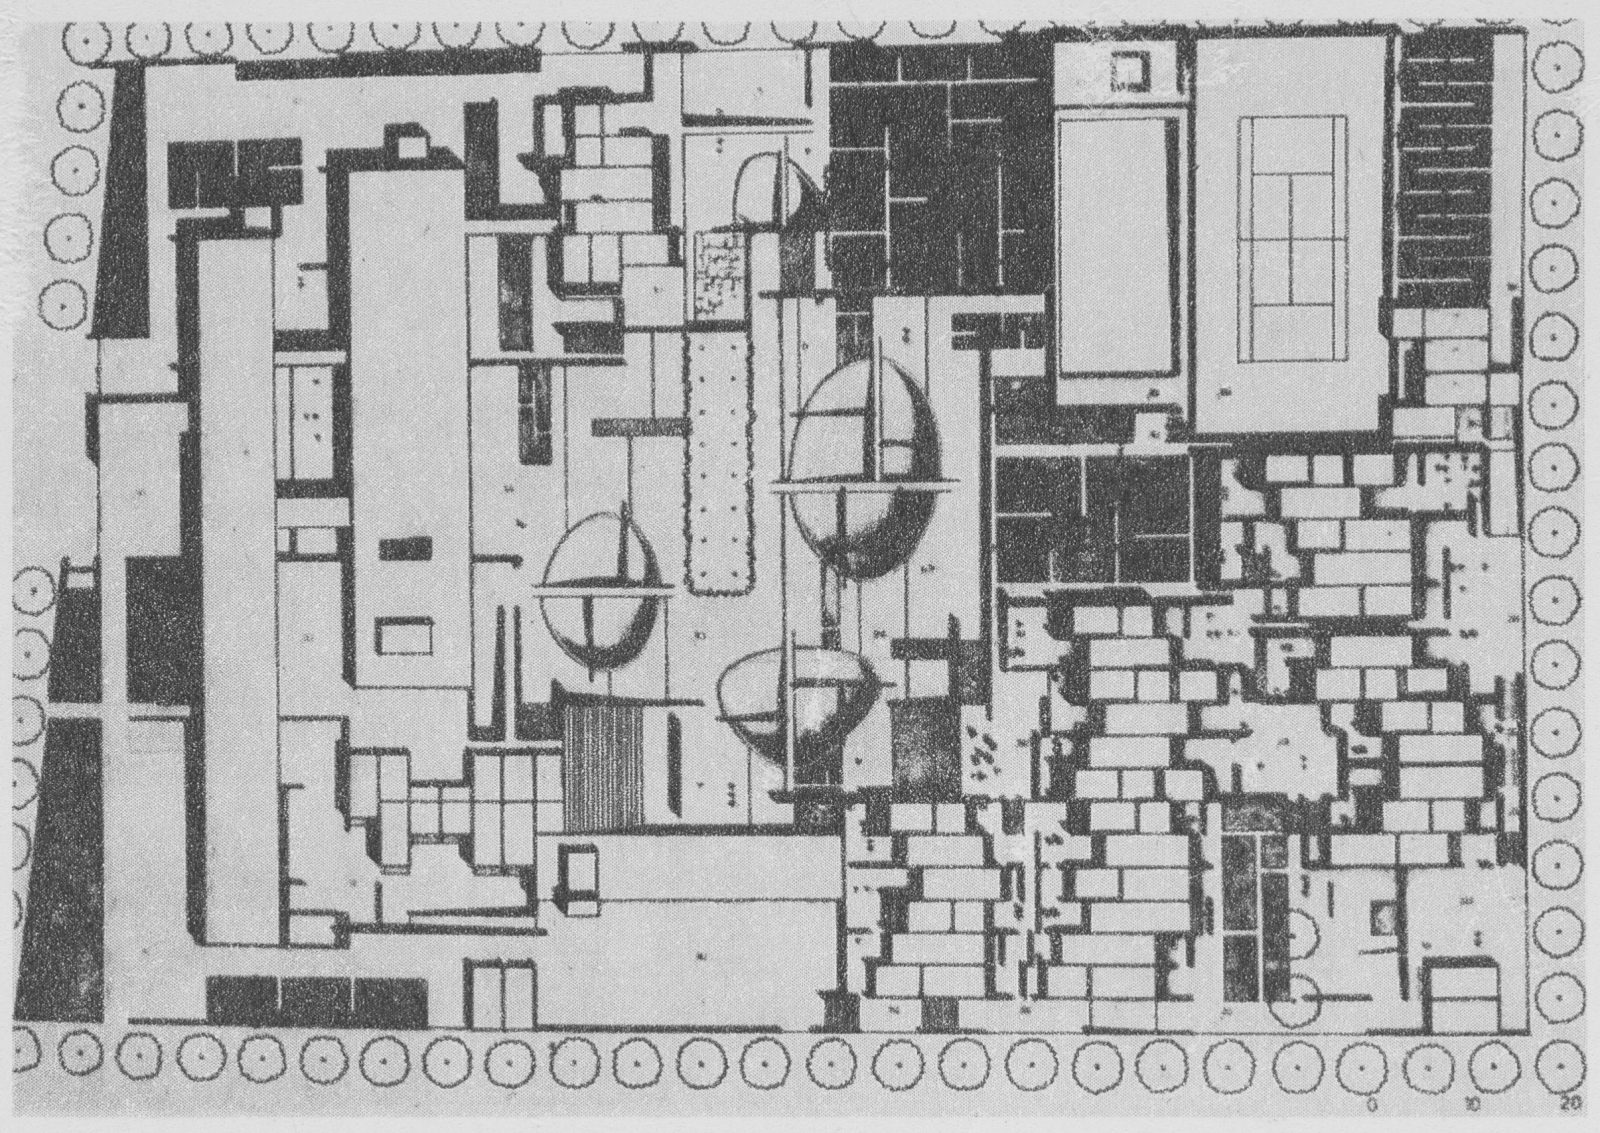 Overview of the embassy premises, garden and living quarters as seen from the reception halls, photo Michał Gutt. Architektura 1971, no. 8, p. 315, 316 and 317 Association of Polish Architects (SARP) Library